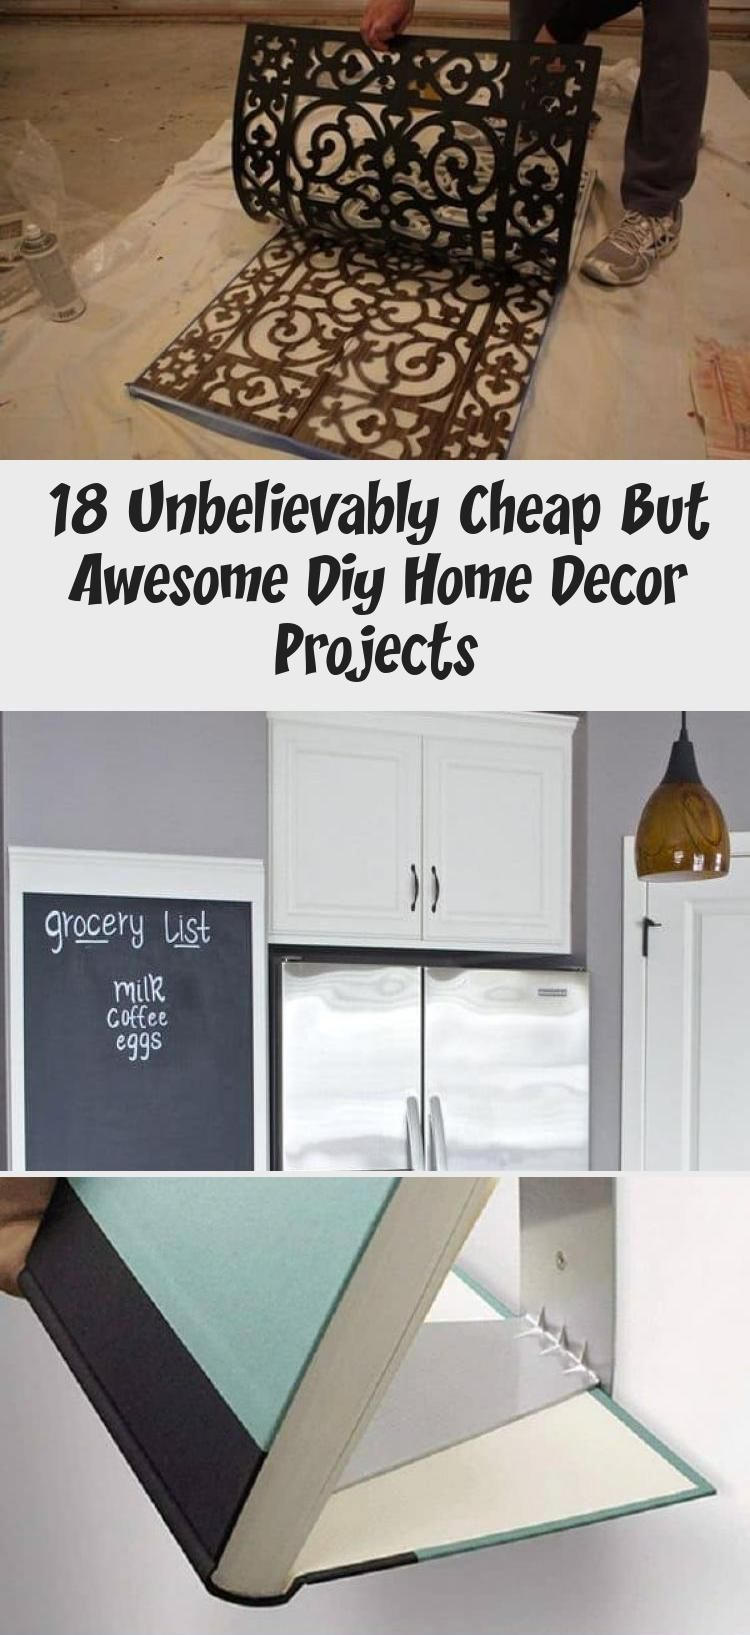 18 Unbelievably Cheap But Awesome Diy Home Decor Projects Decor Home Diy Diy Home Decor Projects Decor Project